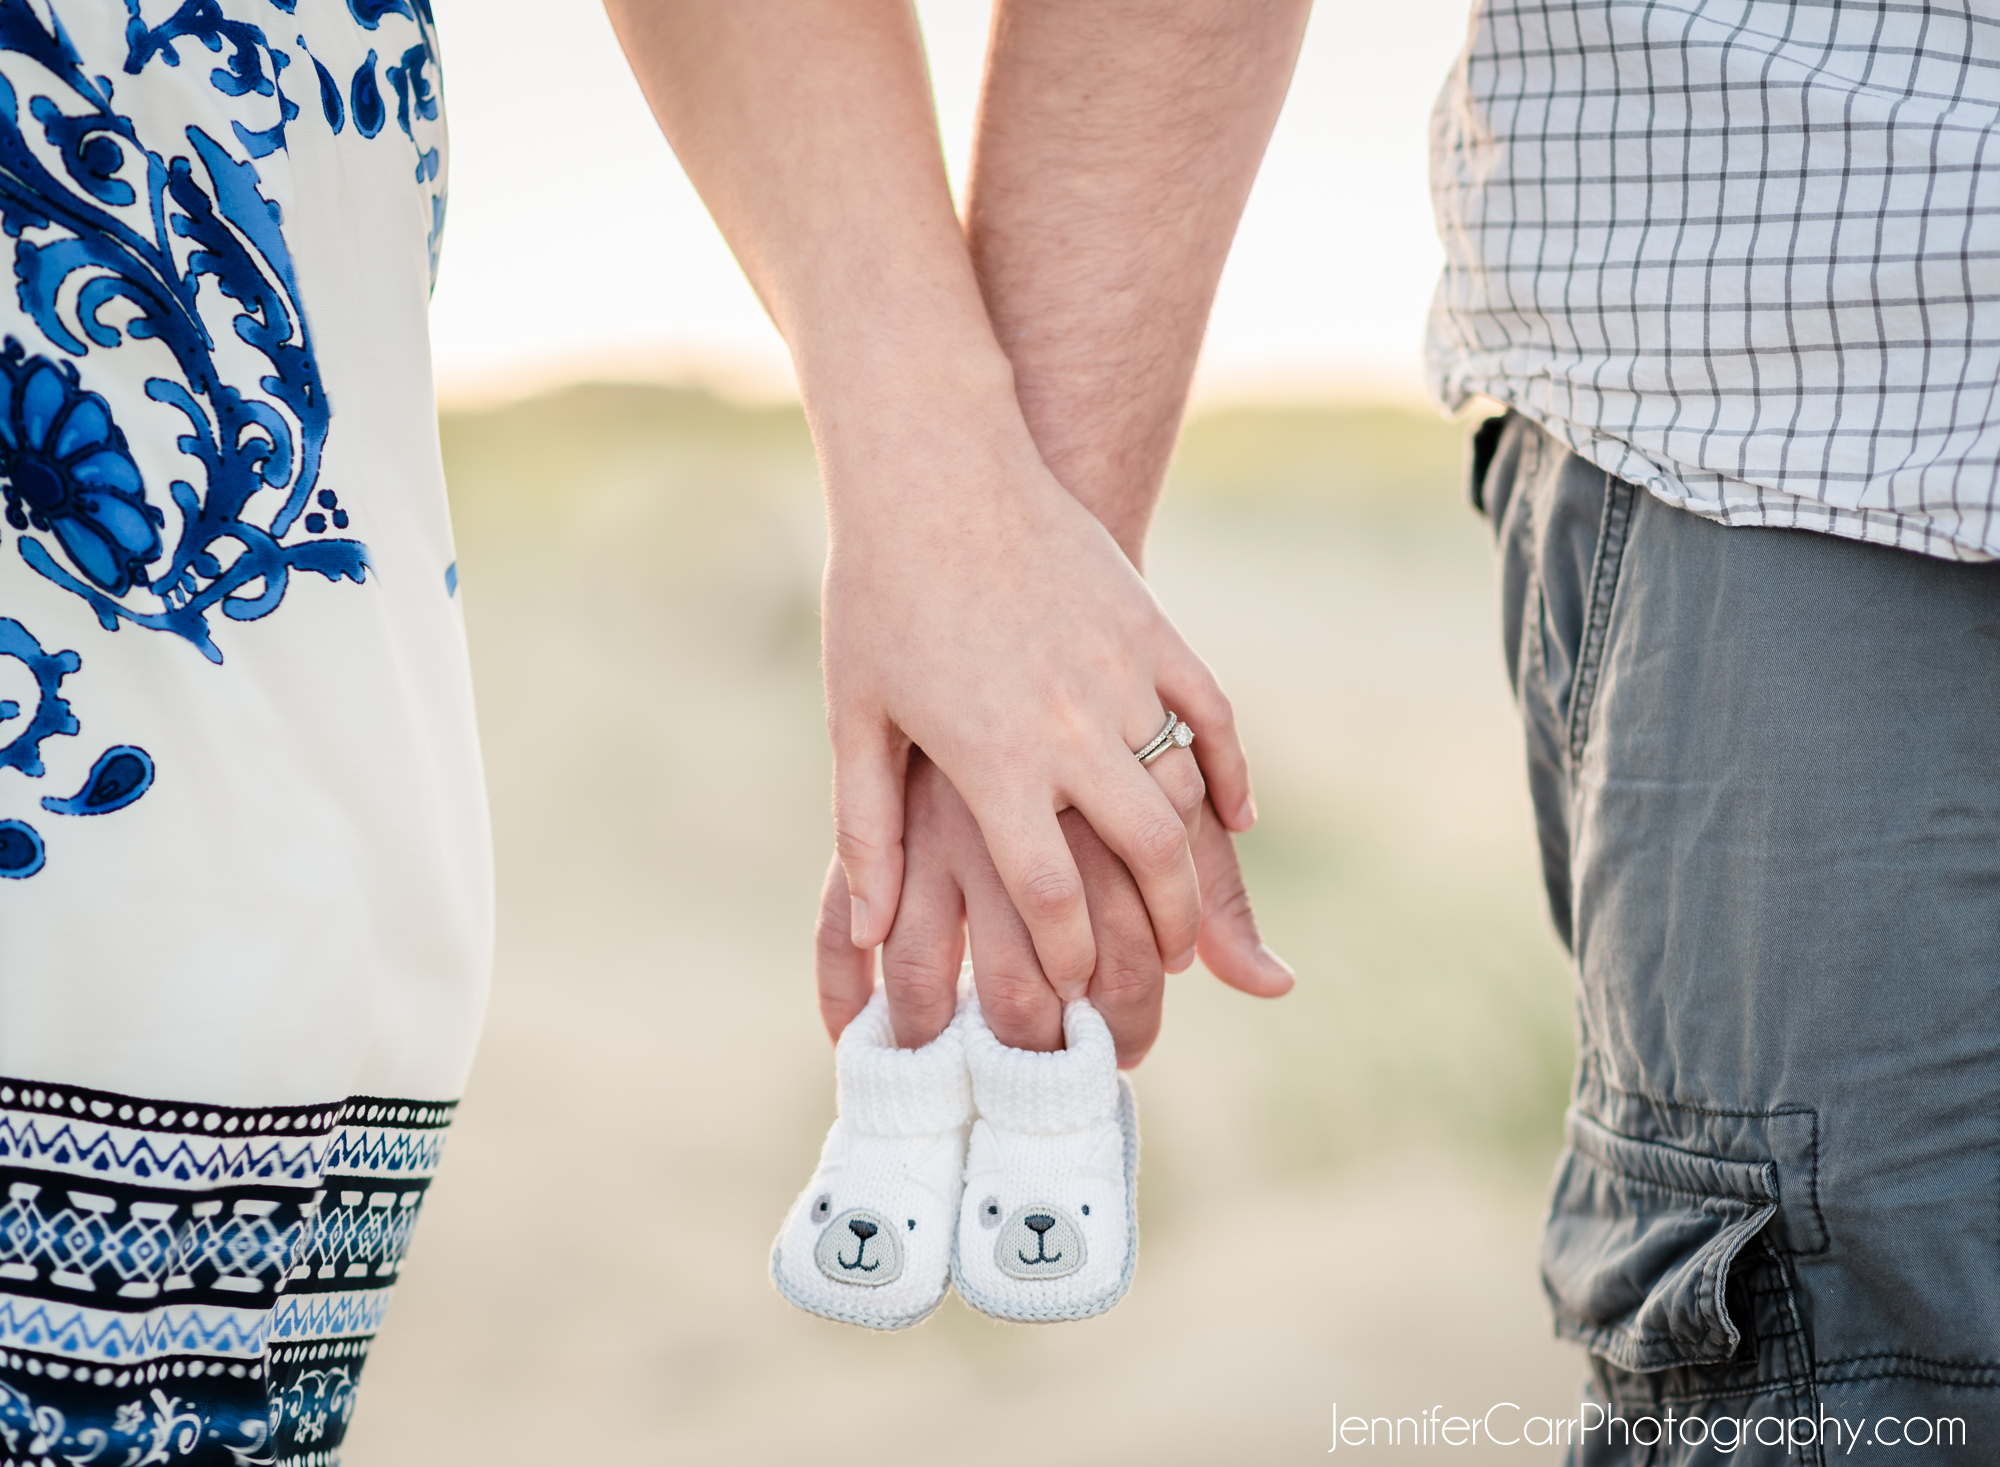 virginia beach family portraits, jennifer carr photography, north end photographs, couples photography, maternity, pregnancy announcement